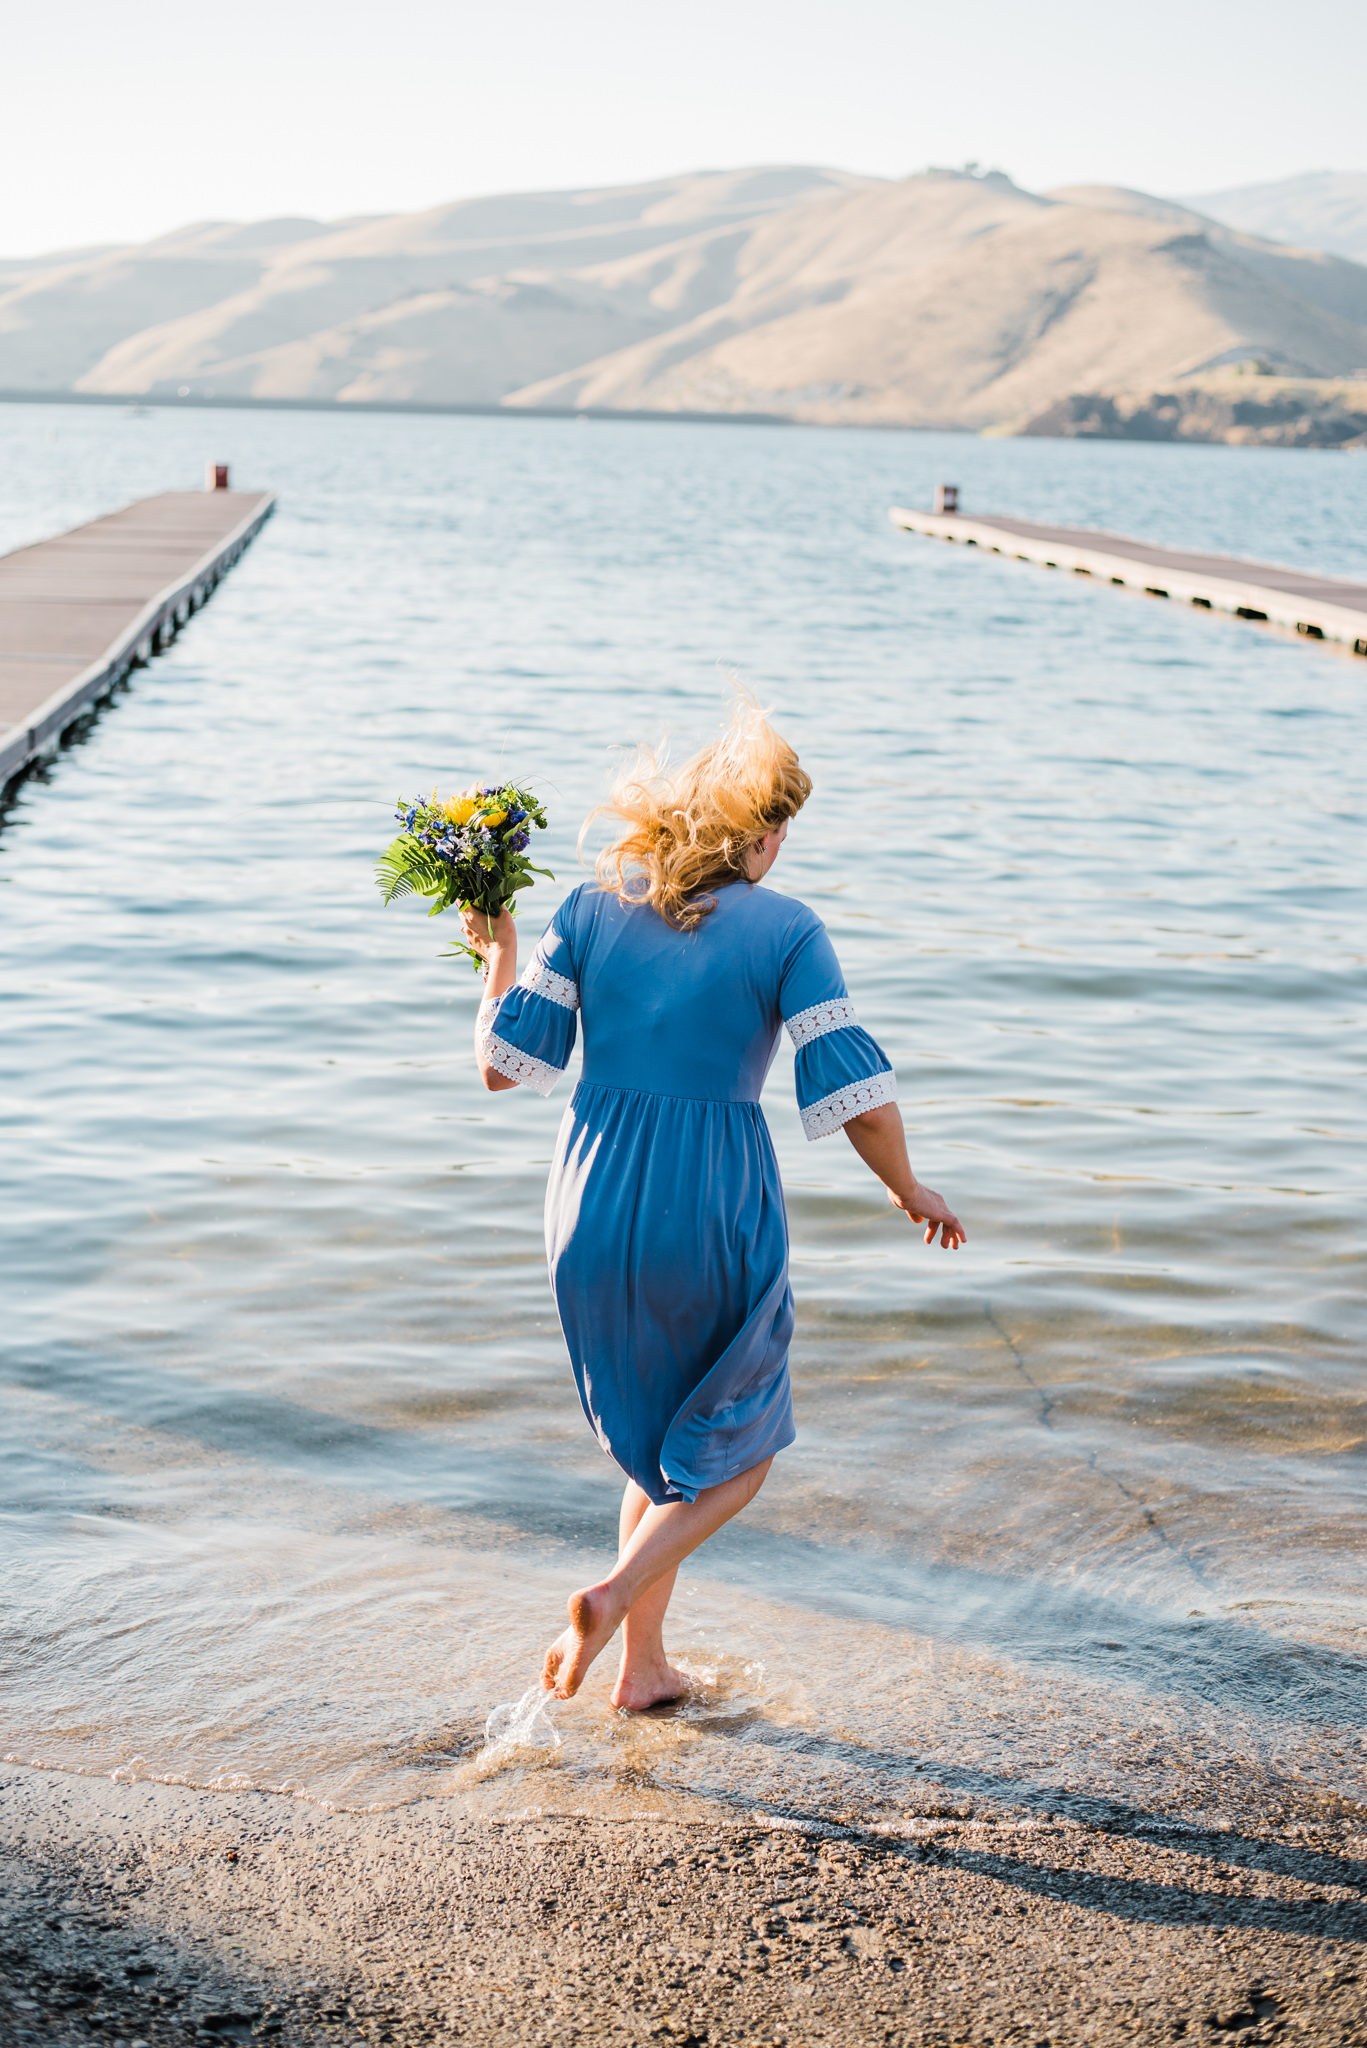 Boise Wedding Photographer // Idaho engagement photographer // Cozy Posing // PNW Engagement // Idaho Engagement Session // Natural Couples Posing Ideas // picnic ideas // waffles // aesthetic // beach couples photography // lake // couples Outfit Ideas // cute couples outfit // Summer couples session // lucky peak // adventure photography // boise couples photographer // SS Photography & Design // Sadie Shirts